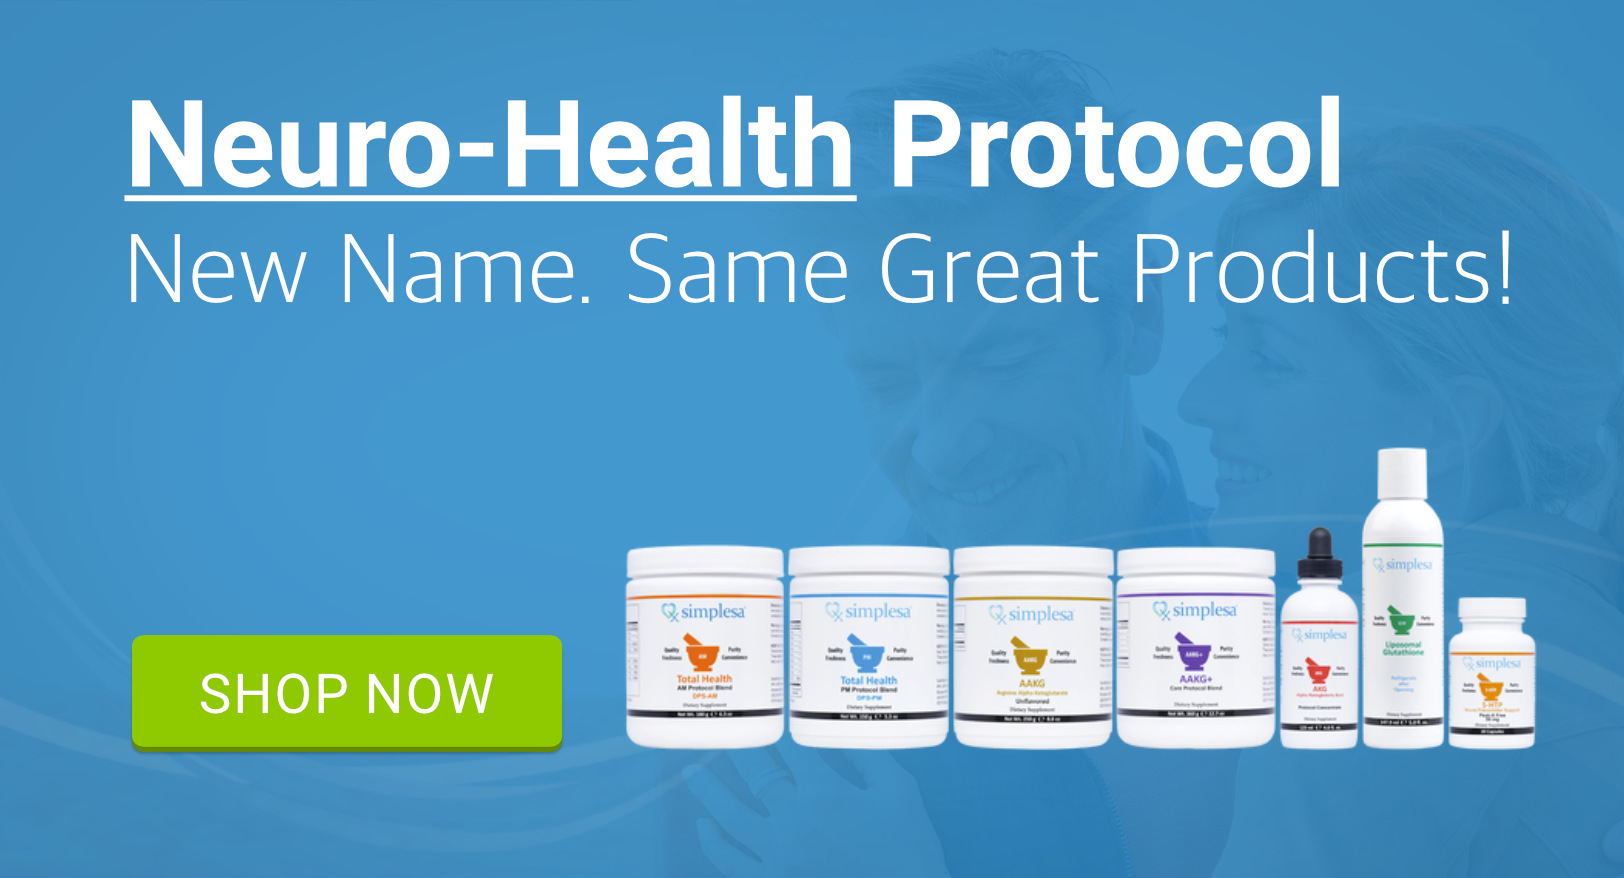 New Name - Neuro-Health Protocol